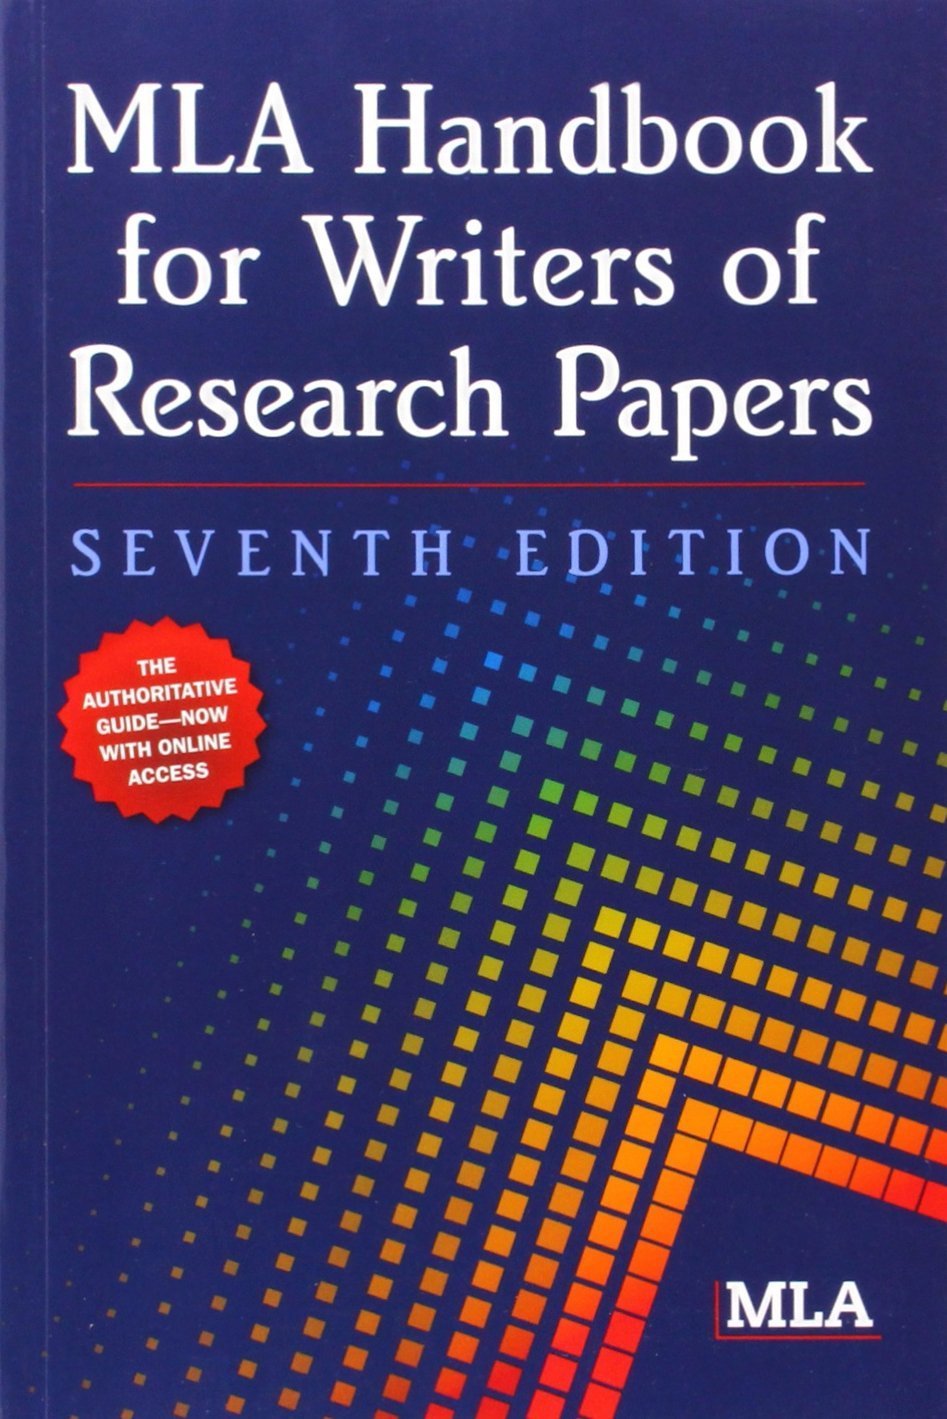 001 Research Paper Mla Handbook For Writers Of Papers 8th Edition Unique Pdf Free Download Full